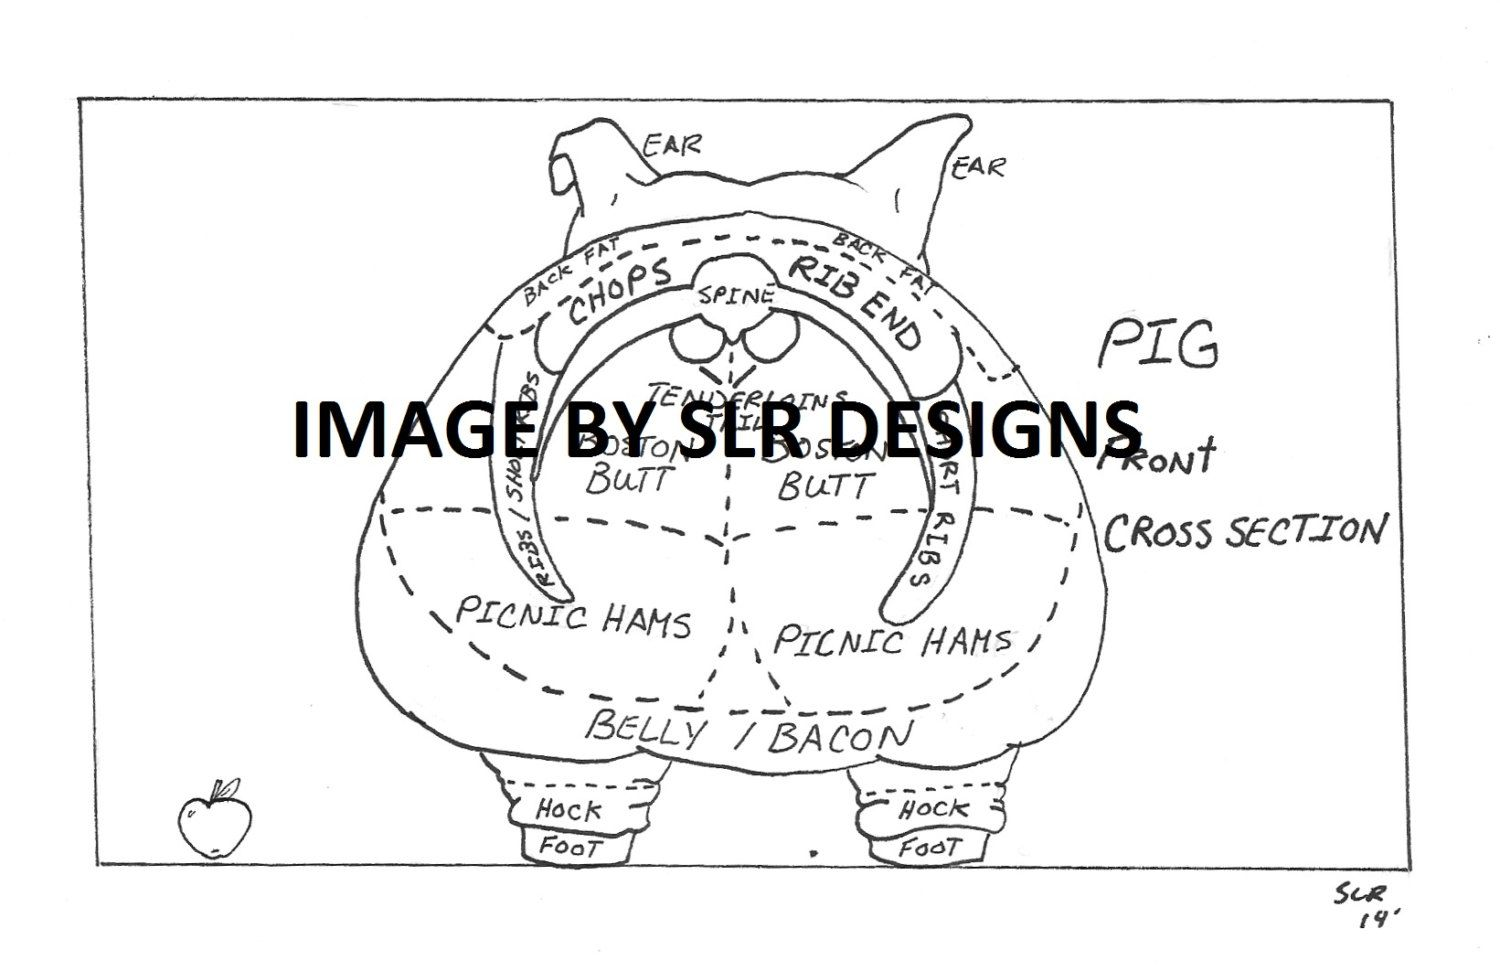 small resolution of pig diagram front cross section